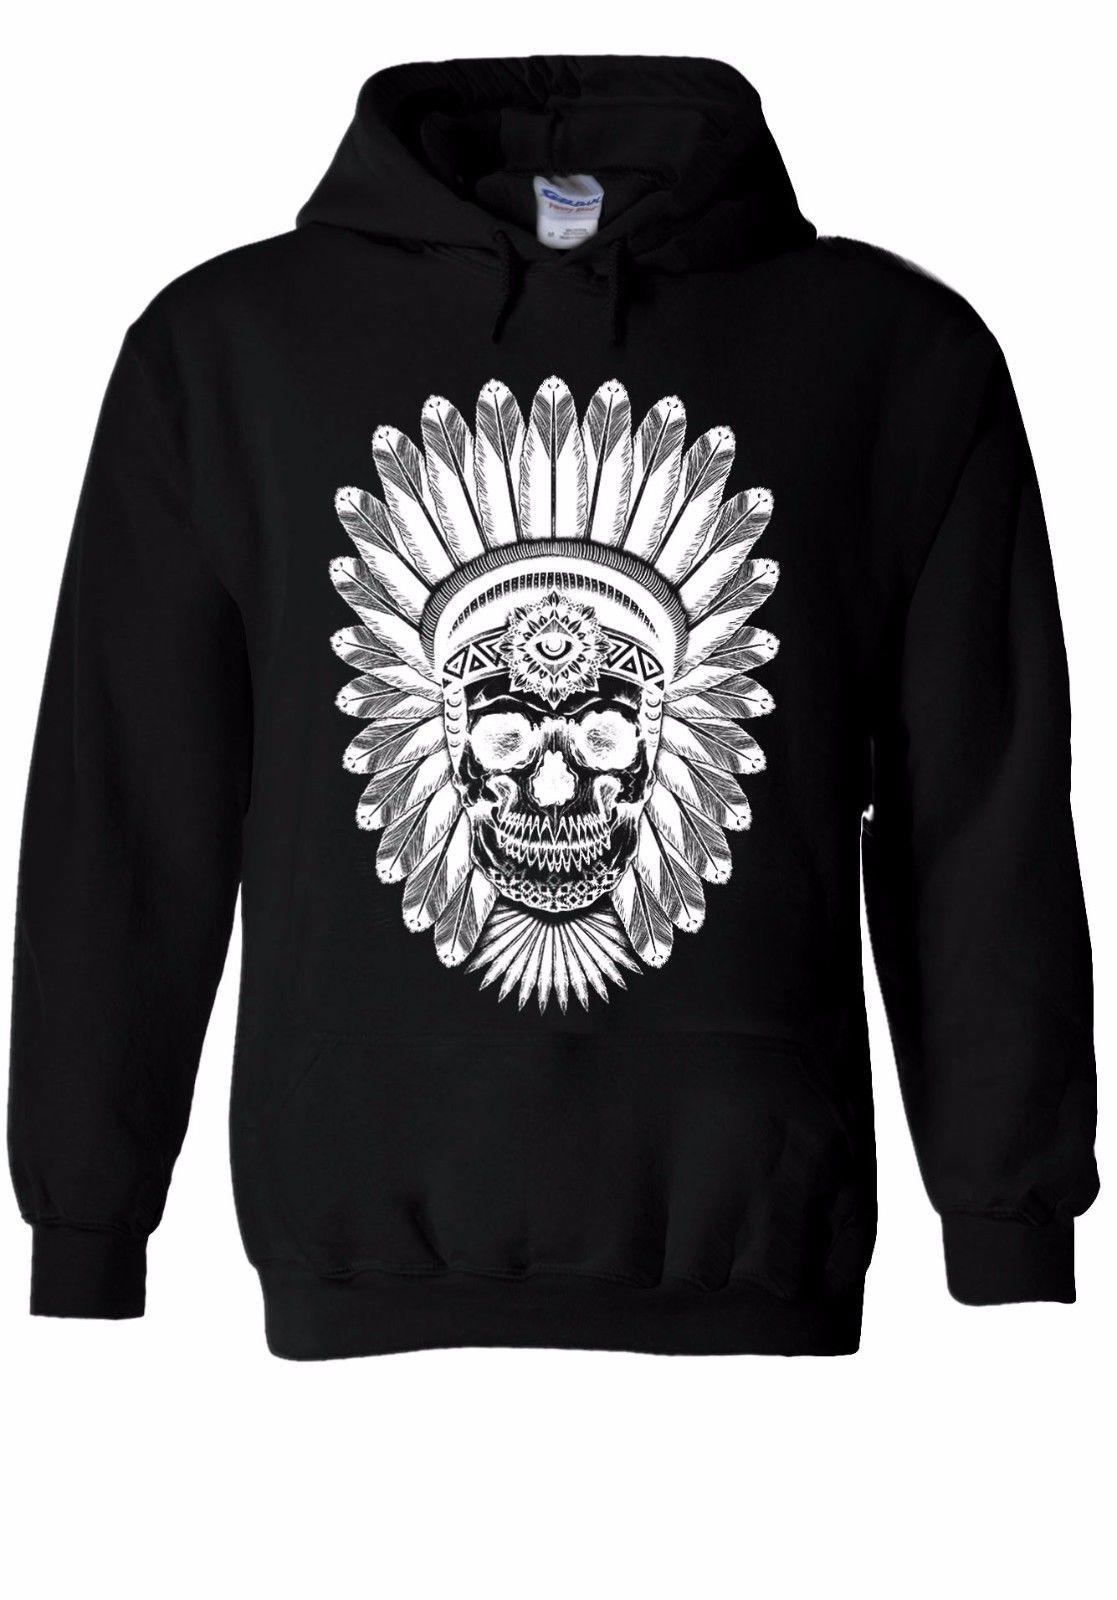 a92139ac0c07 Indian Skull Skeleton Cool Indie Sudadera con capucha Jumper Hombres  Mujeres Unisex 1136